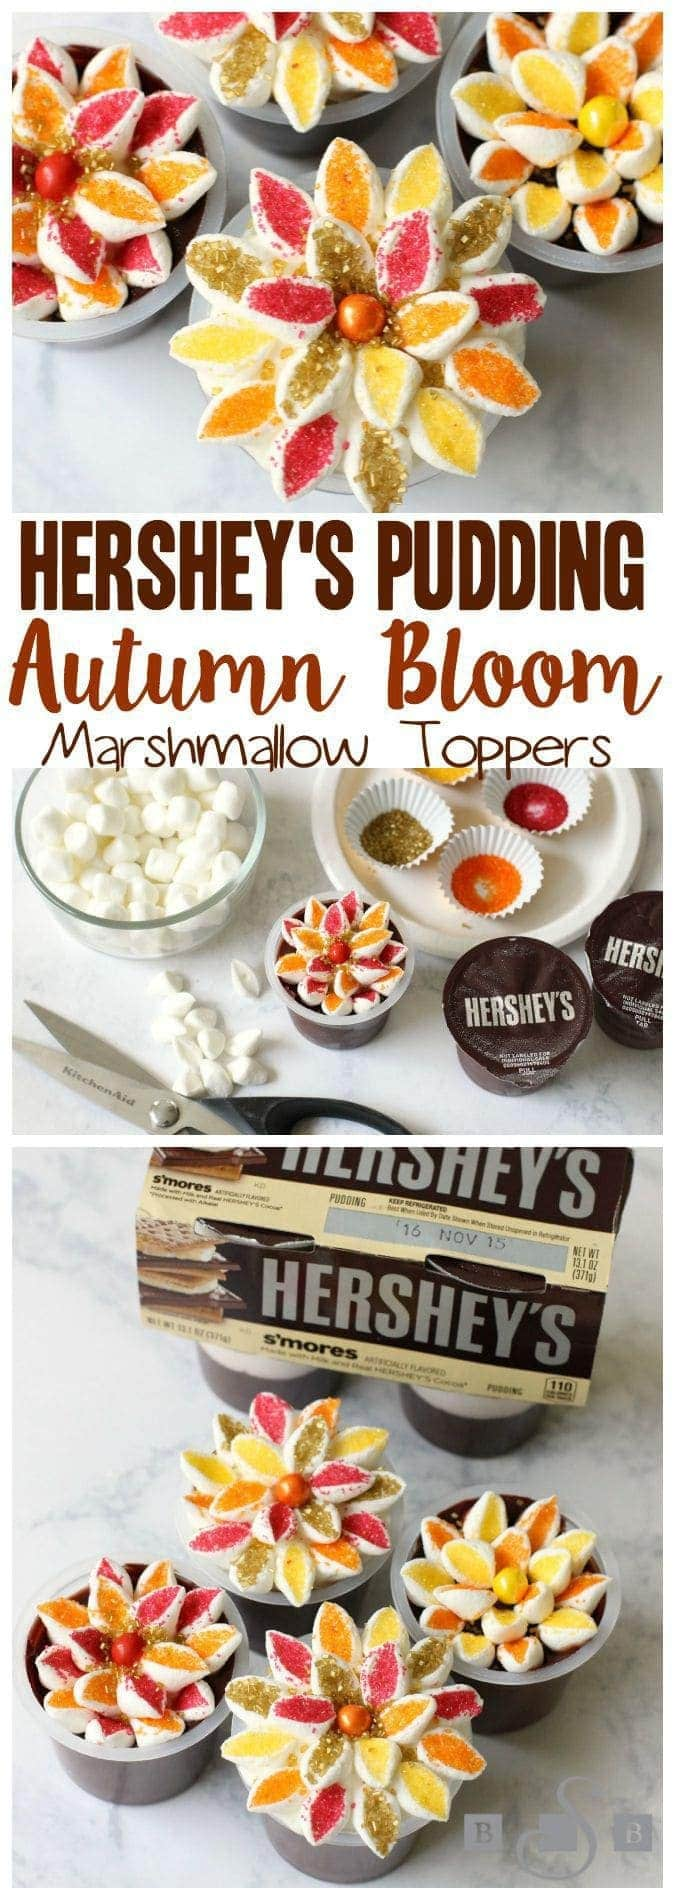 HERSHEY'S PUDDING AUTUMN BLOOM TOPPERS